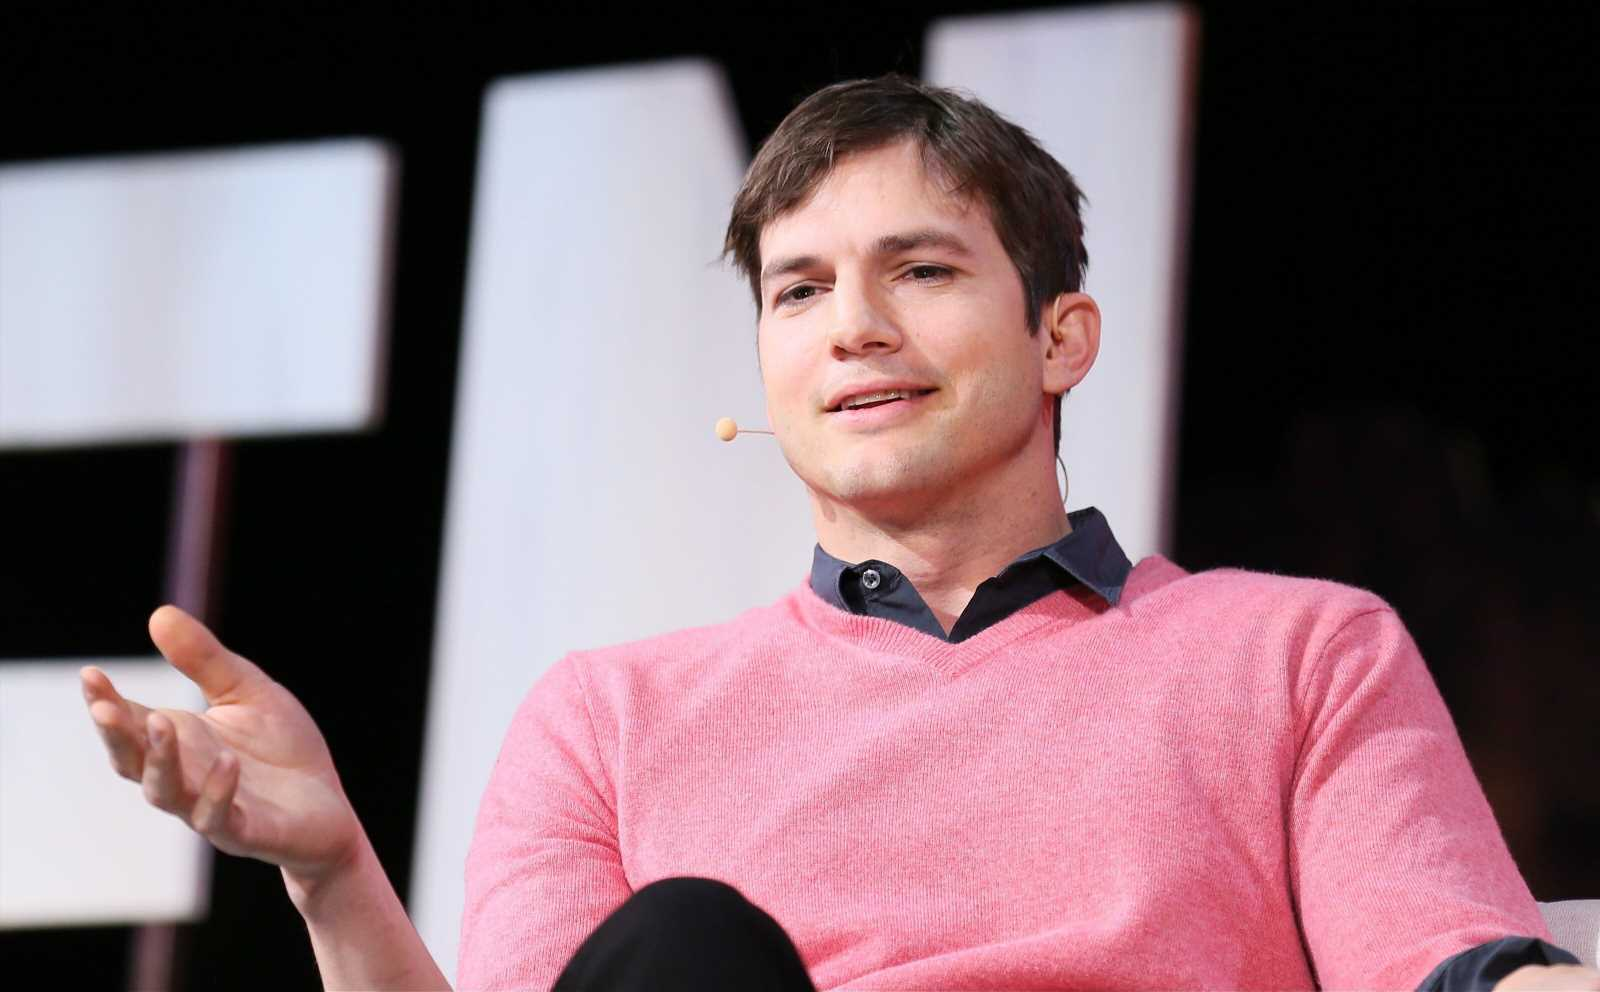 Ashton Kutcher Deletes 'Snarky' Tweet Likely About Marriage To Demi Moore